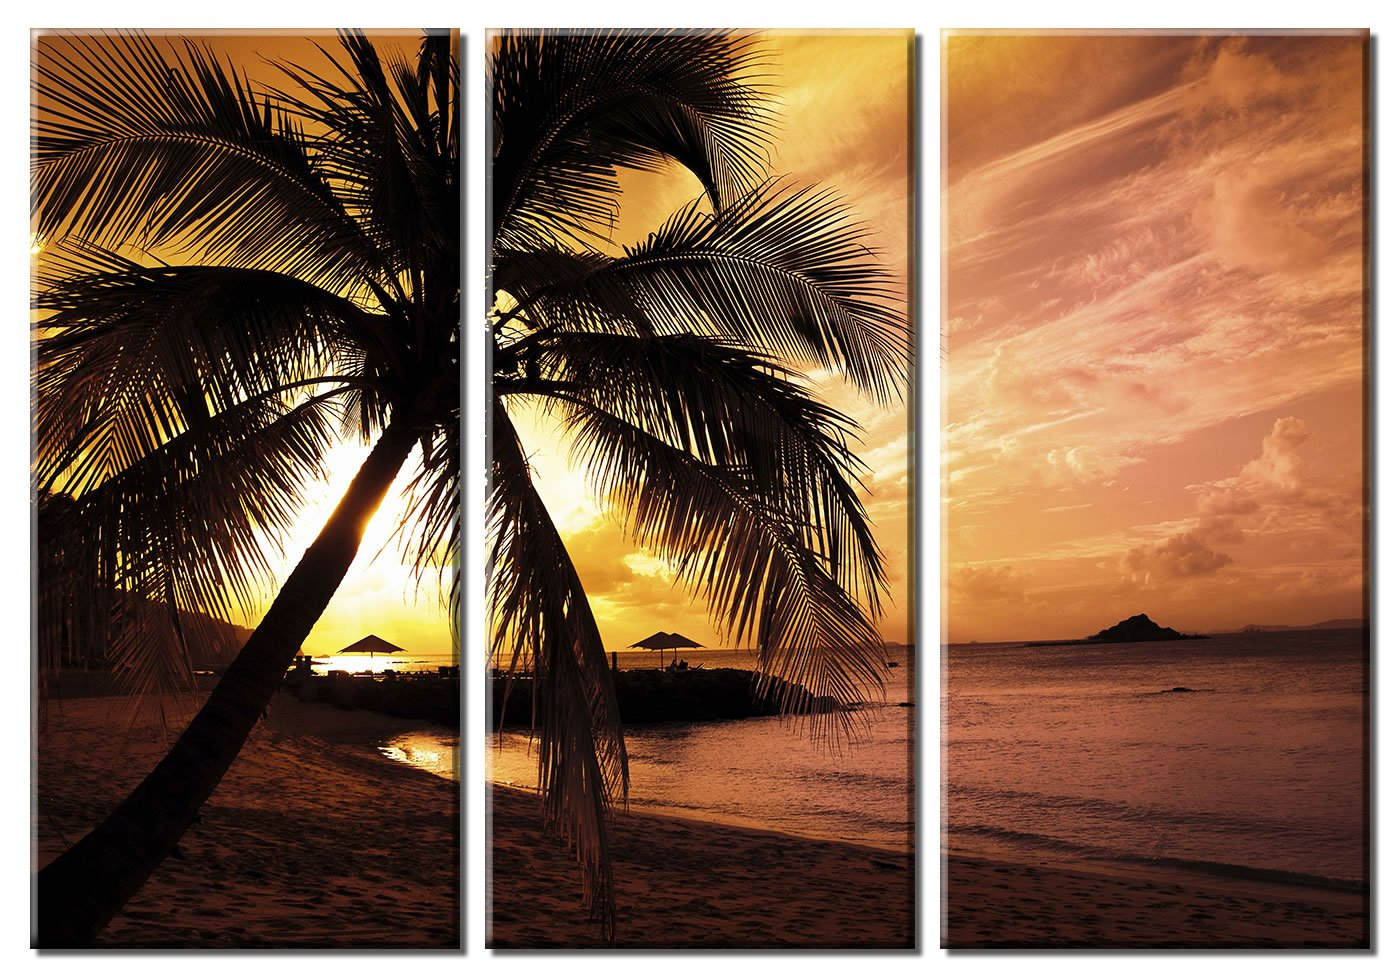 Amazon Picture Sensations Framed Huge 3 Panel Palm Tree Sunset Beach Hawaii Giclee Canvas Art Prints Posters